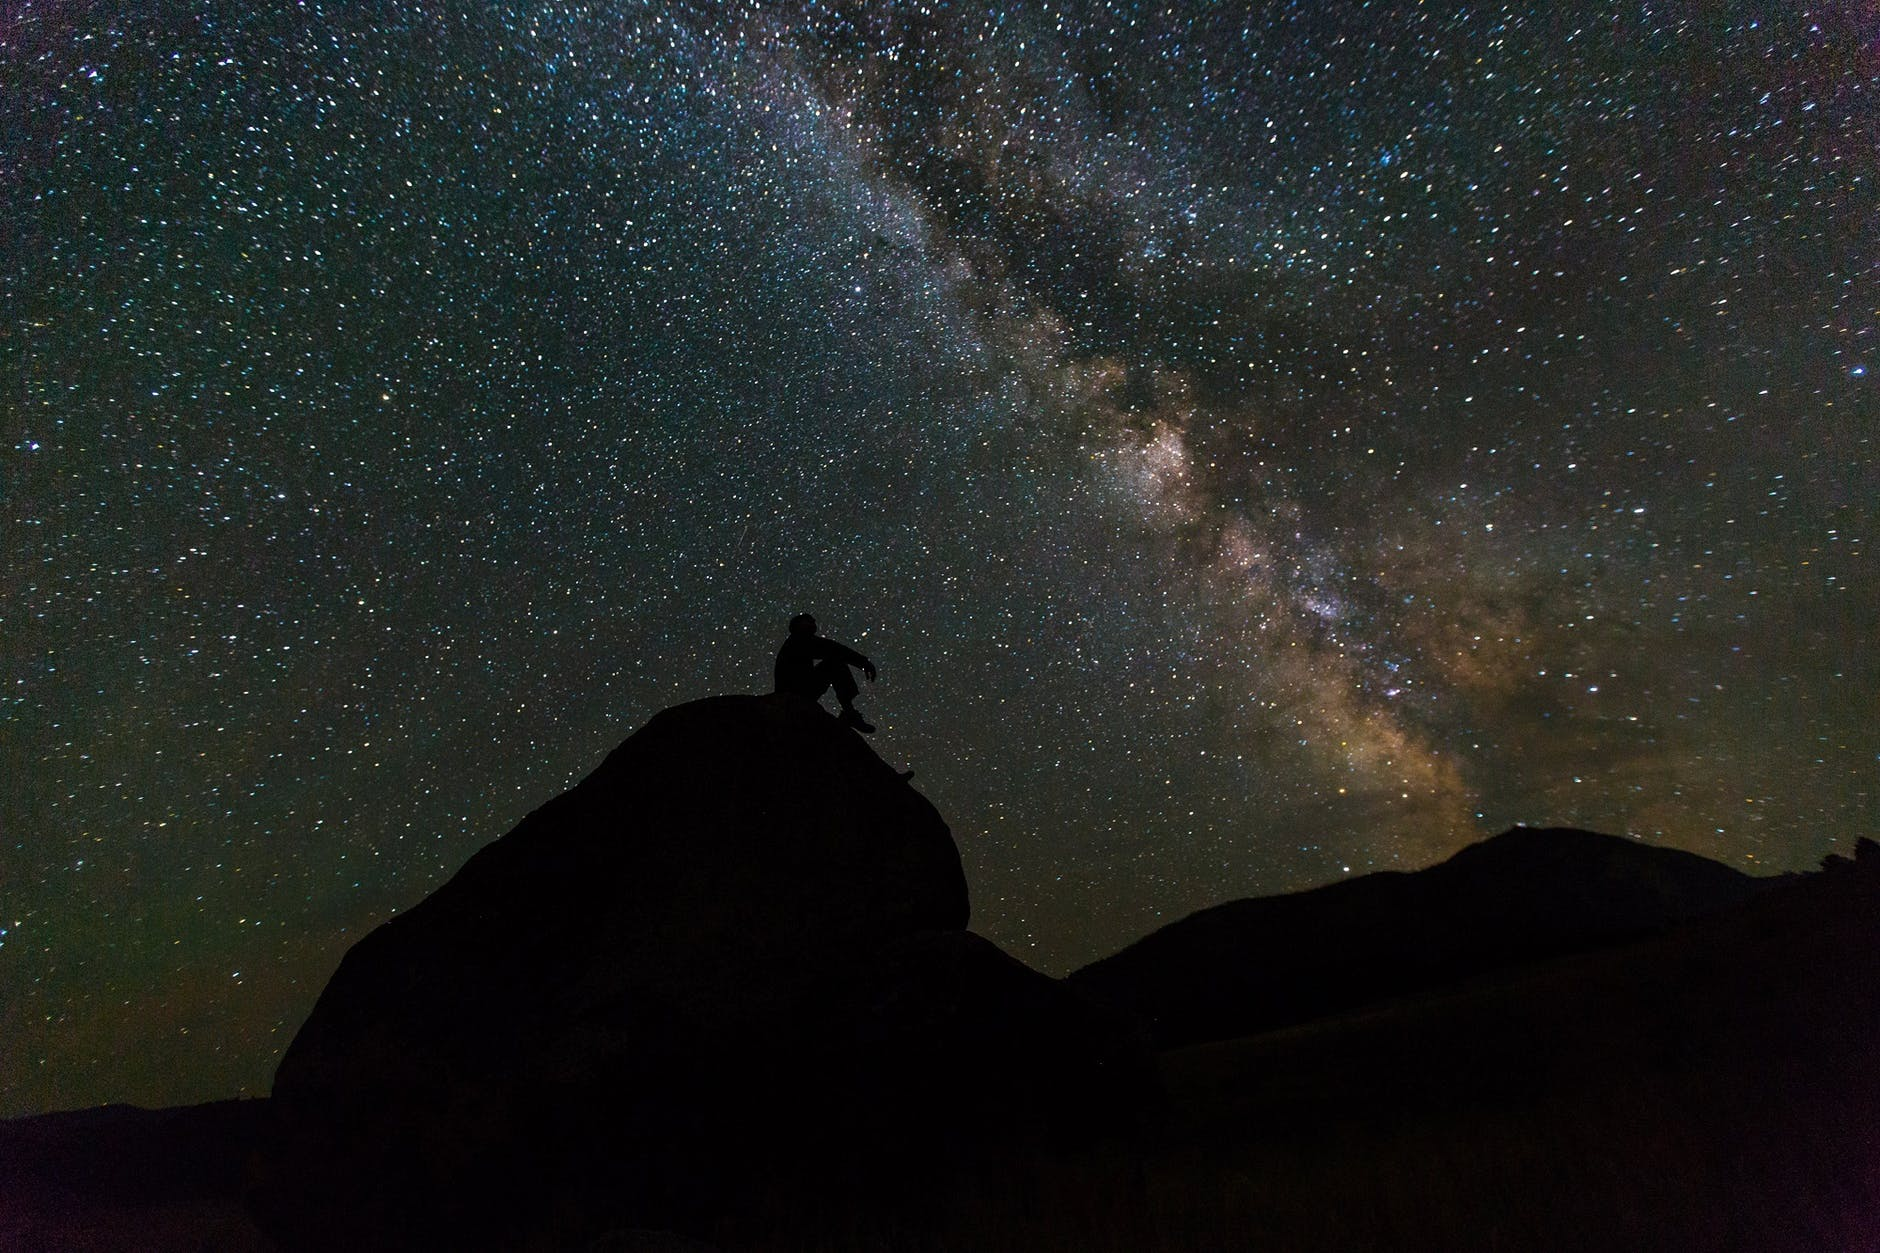 Once you're there at night, you can lay down together and look at the stars and gaze into the infinity of space together.